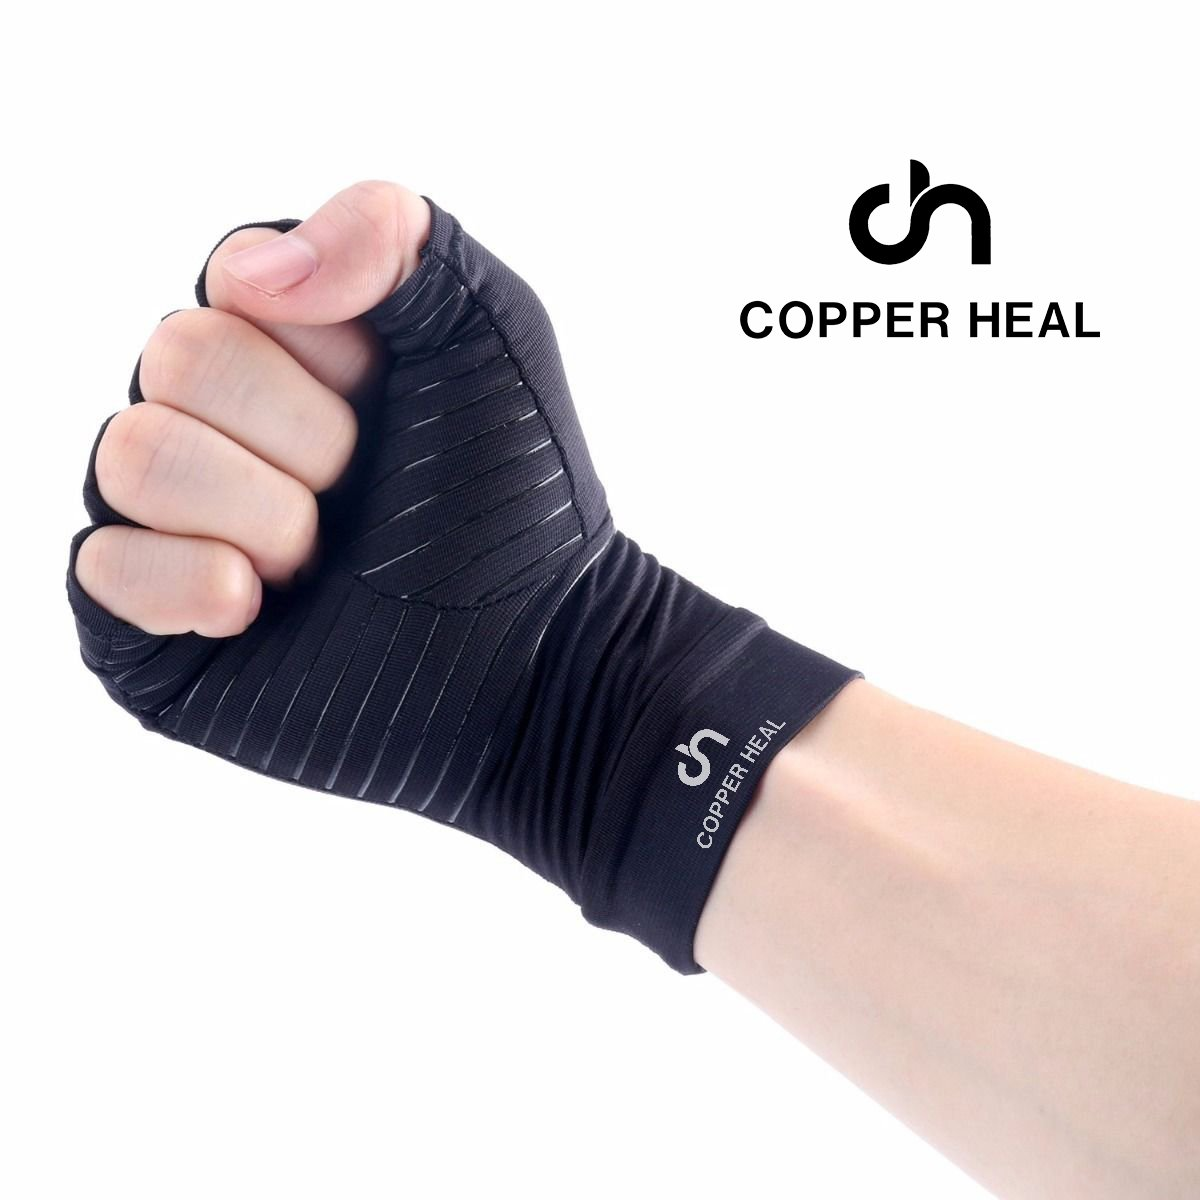 COPPER HEAL Arthritis Compression Gloves - Best Medical Copper Glove Guaranteed to Work for Rheumatoid Arthritis, Carpal Tunnel, RSI Osteoarthritis & Tendonitis Open in Fingers Fingerless Fit Size S by COPPER HEAL (Image #4)